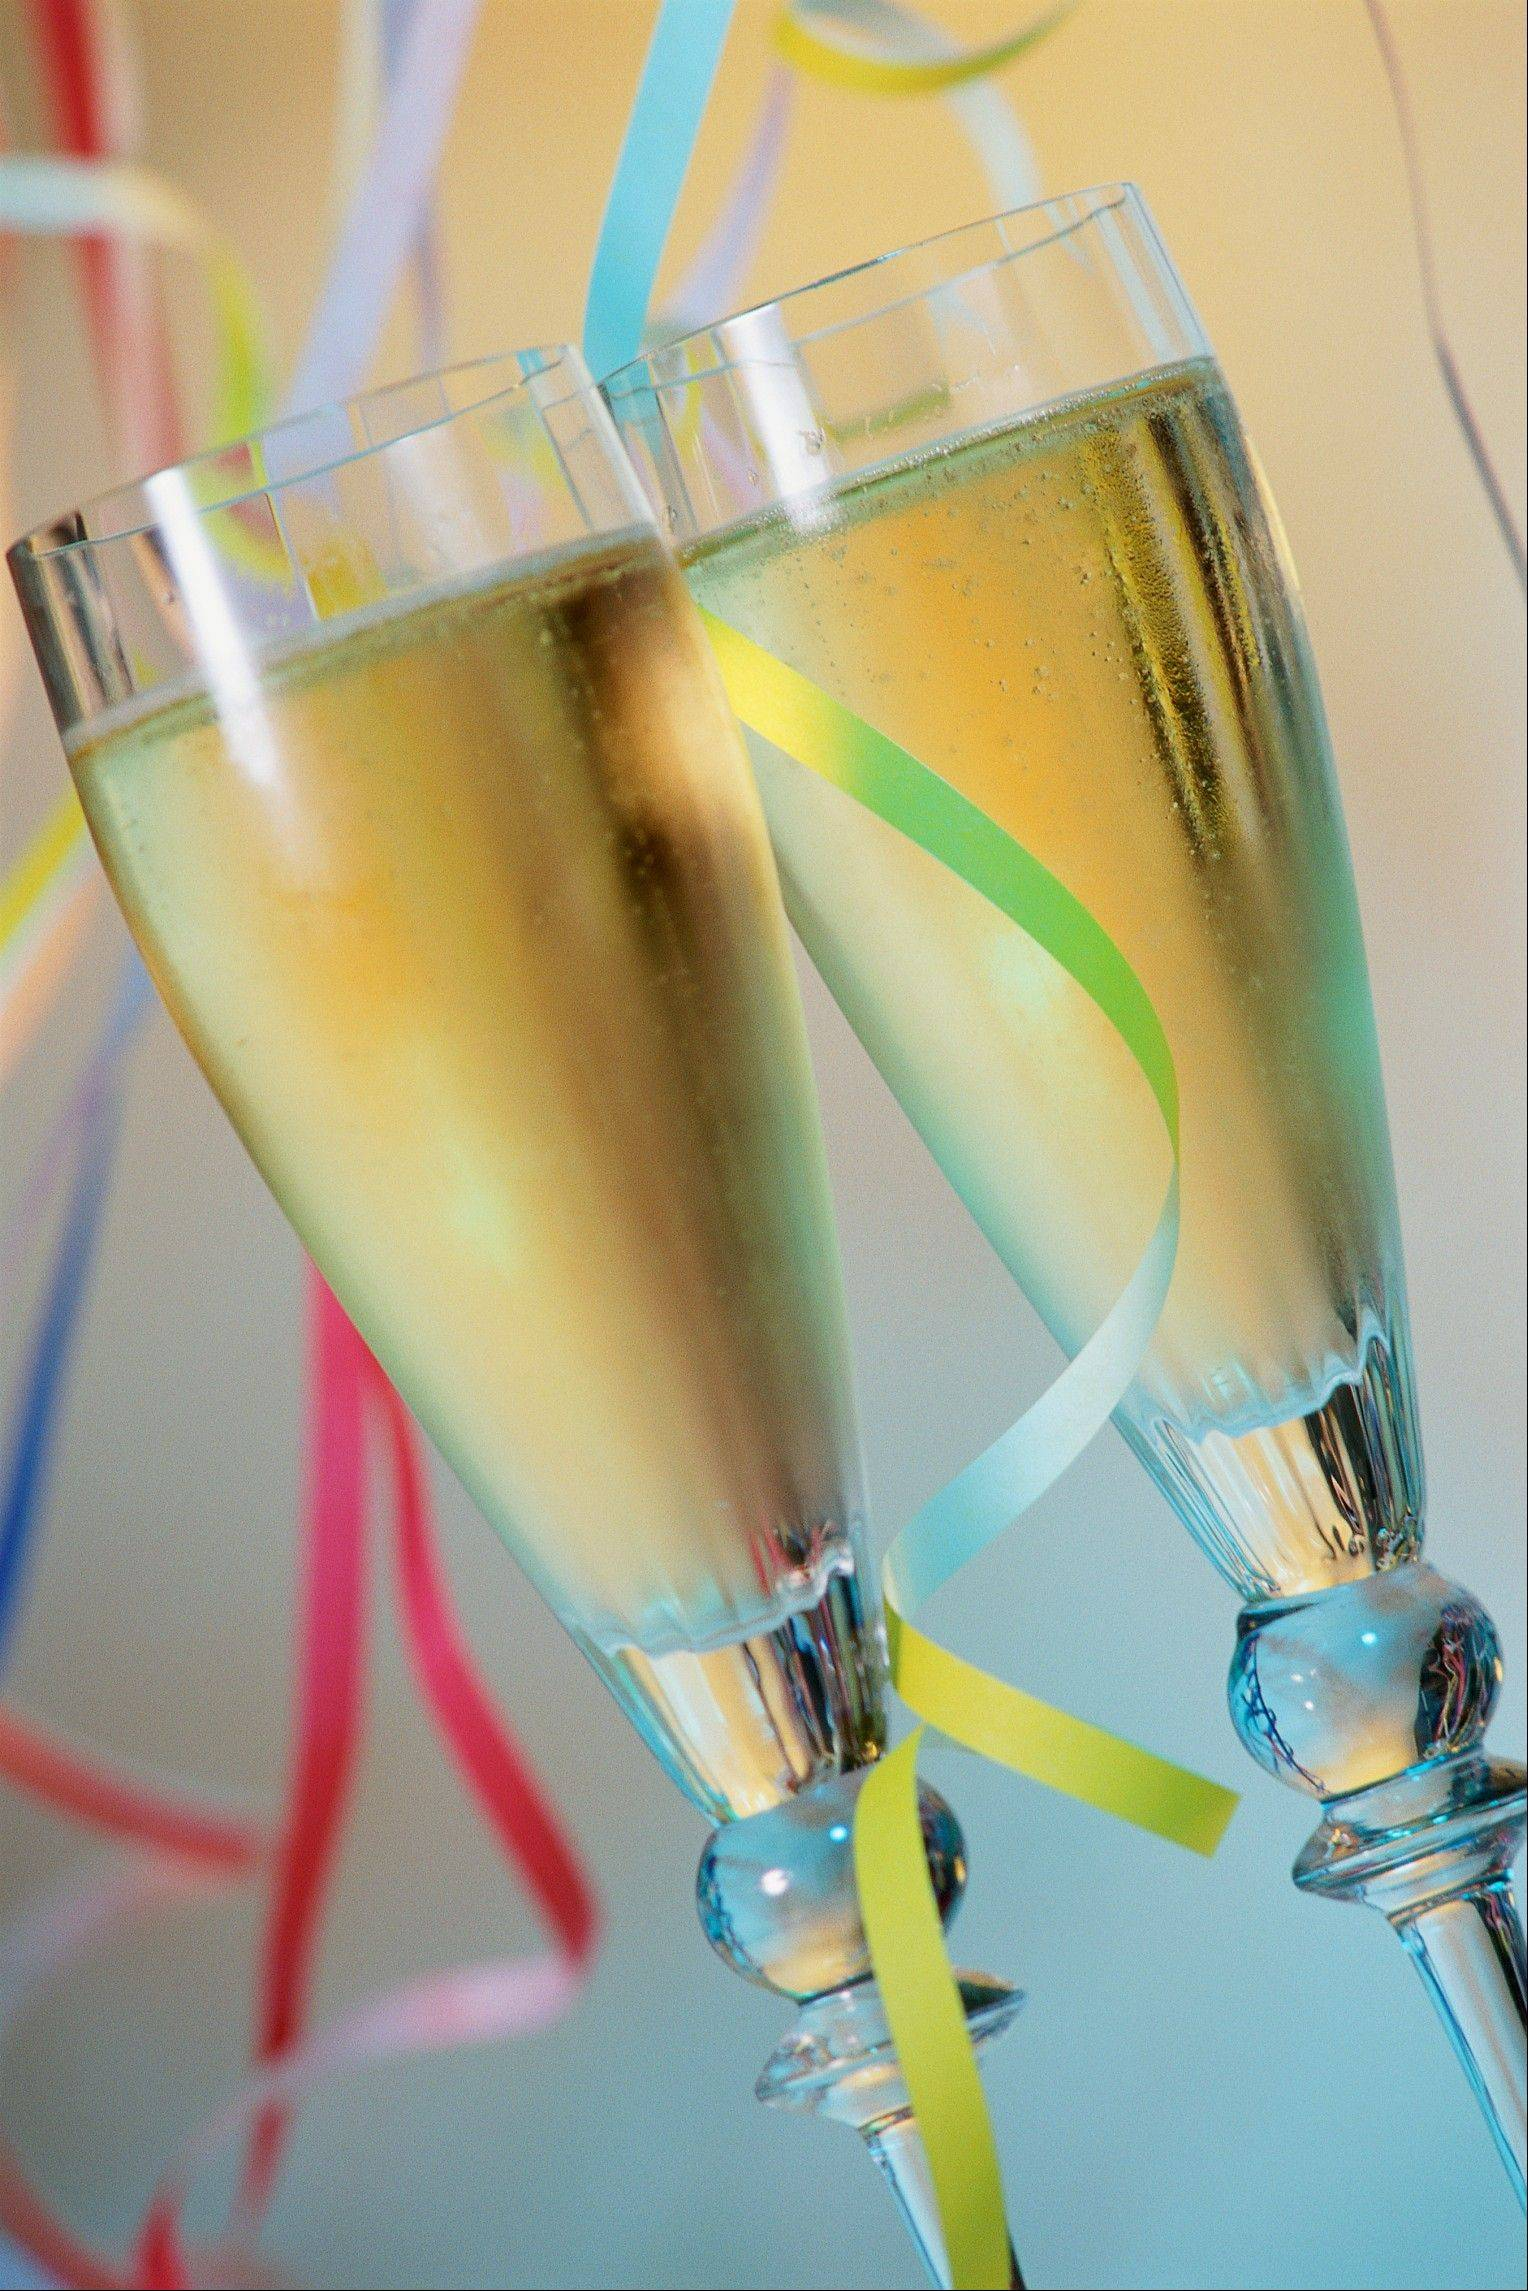 Say so long to 2012 with a champagne toast at local restaurants and bars.